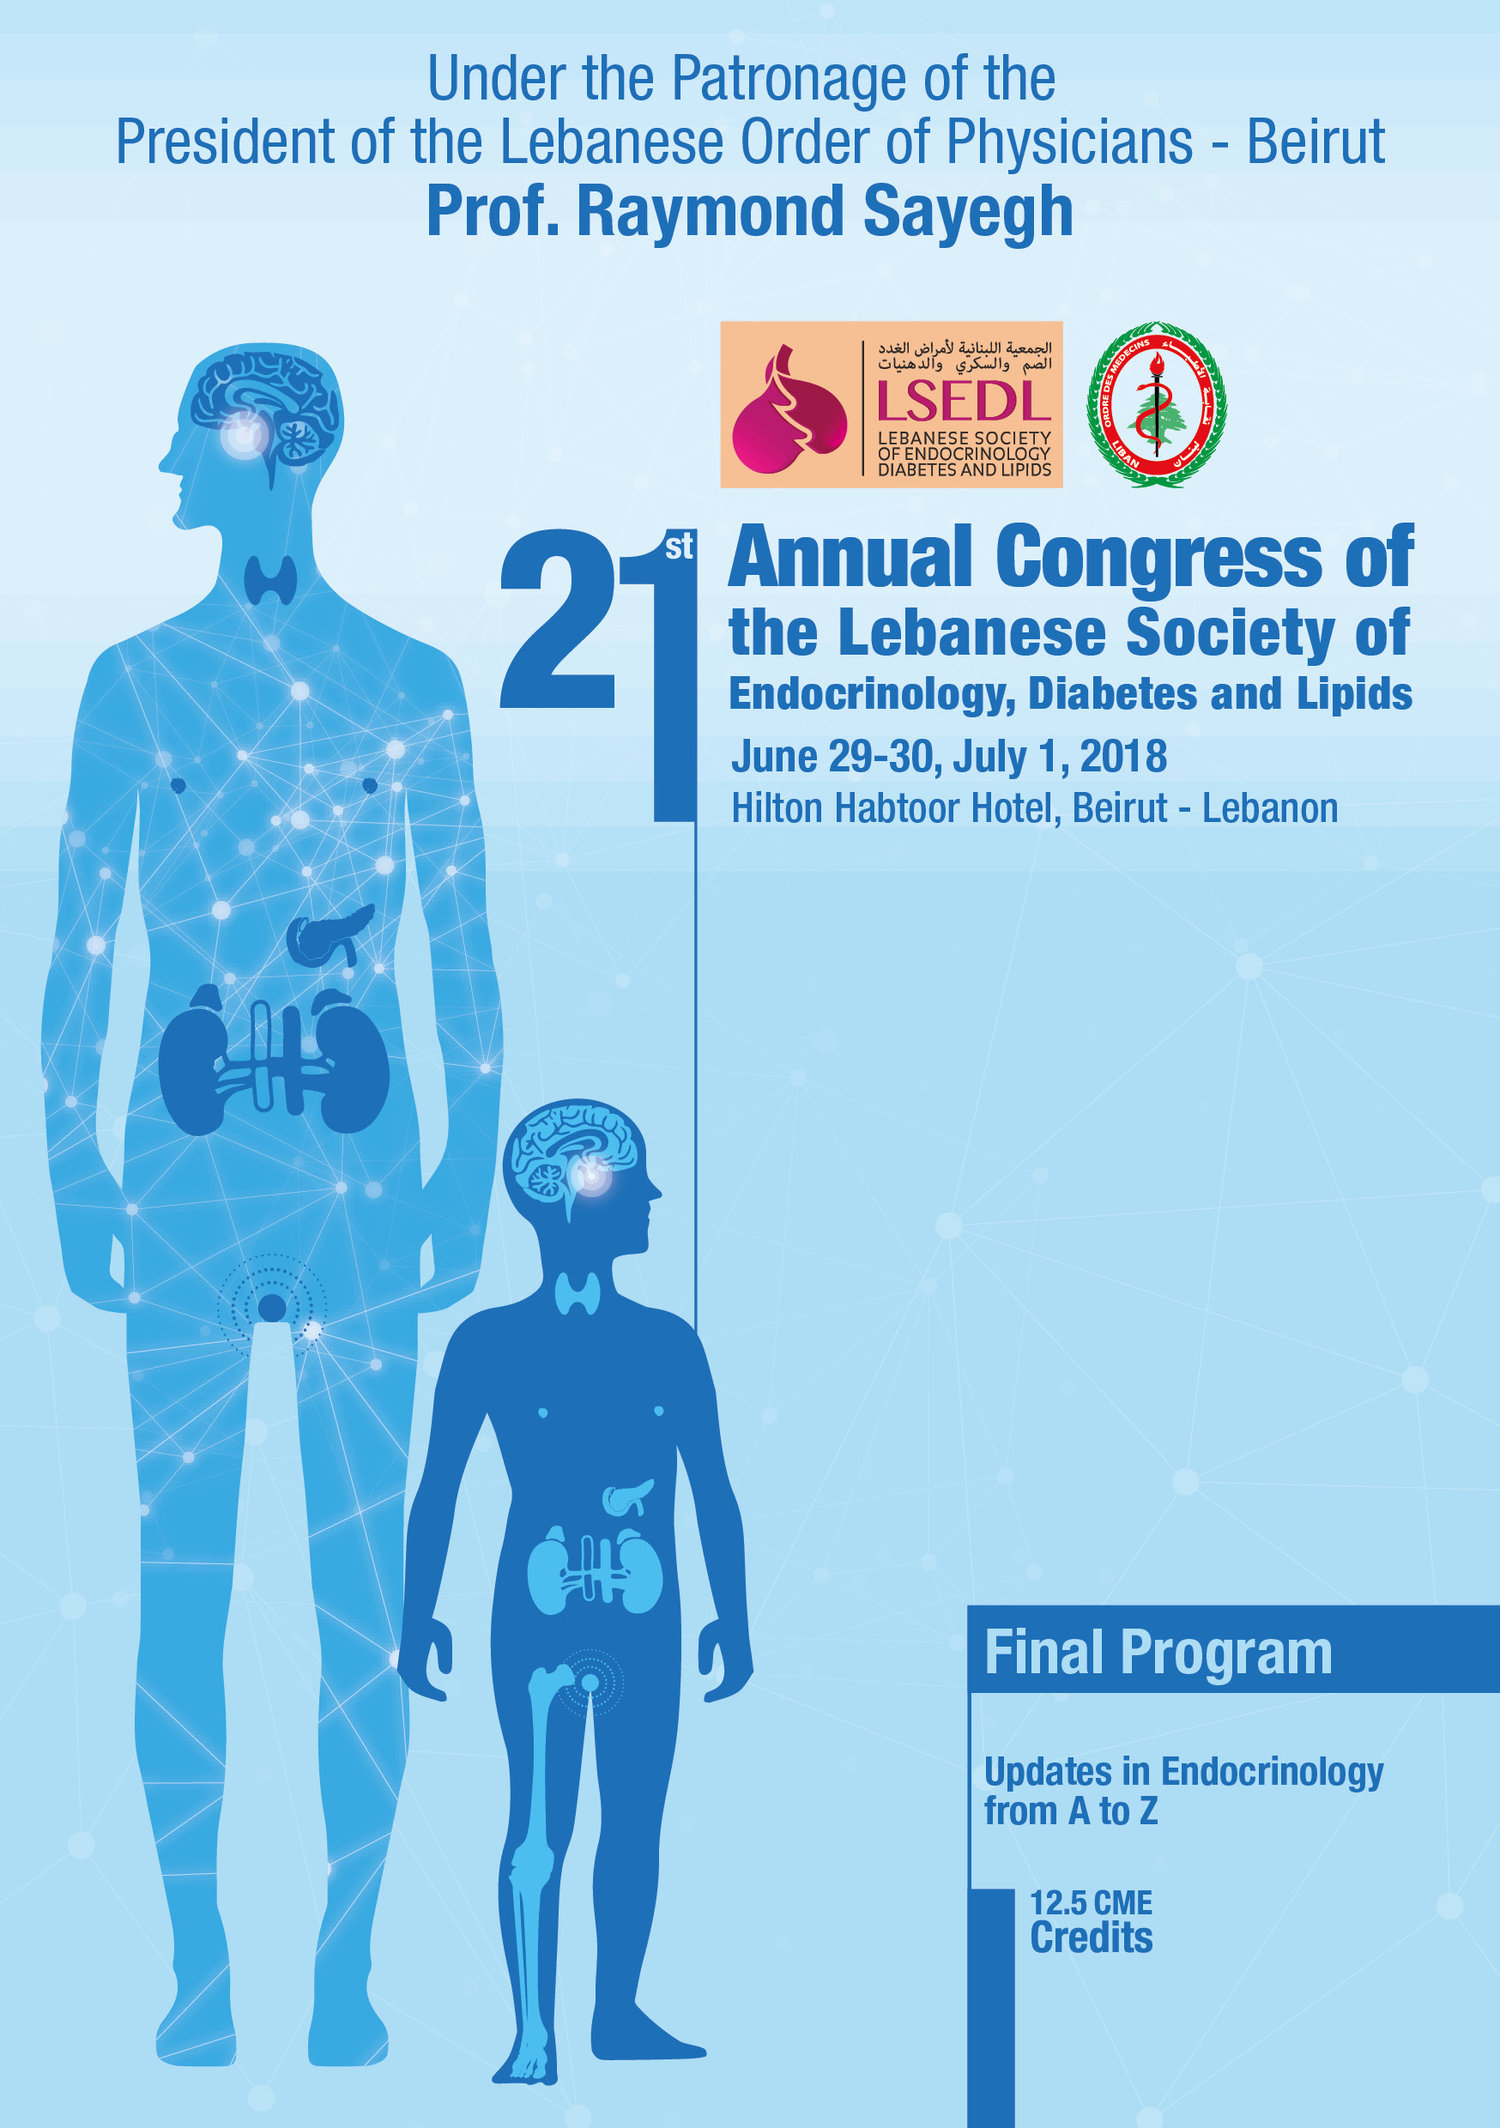 21ST ANNUAL CONGRESS OF THE LEBANESE SOCIETY OF ENDOCRINOLOGY